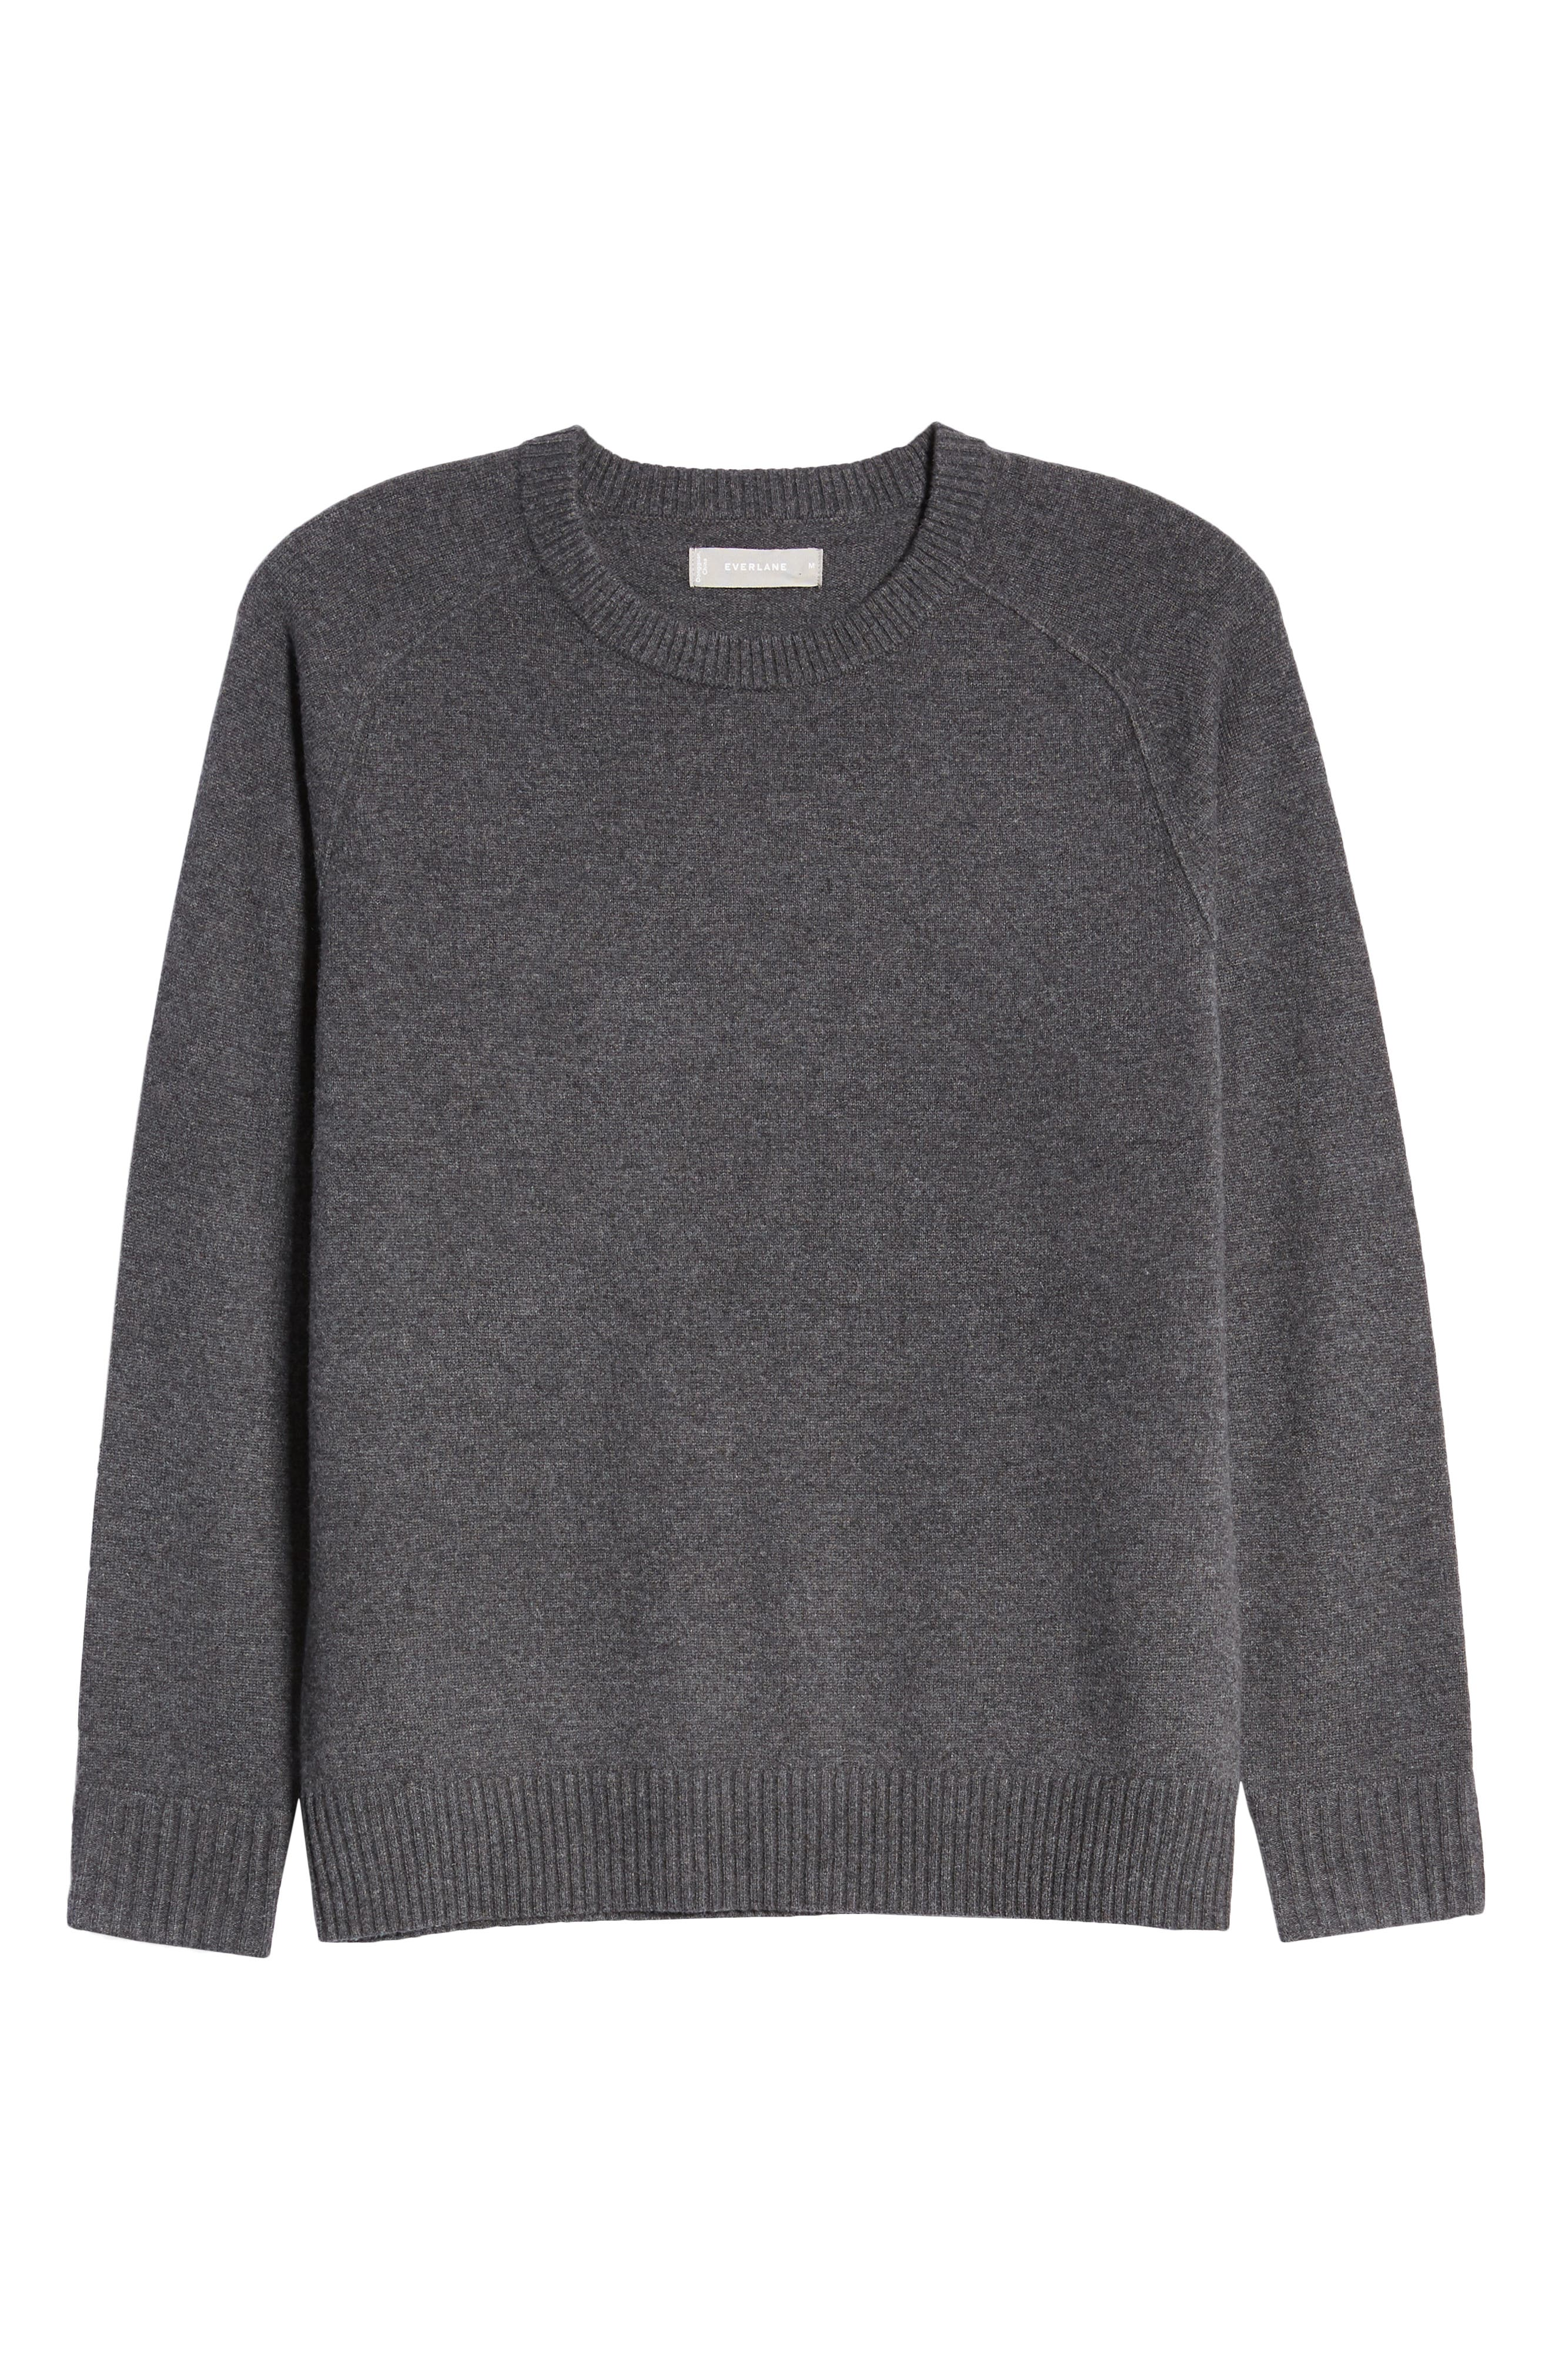 Image of EVERLANE Cashmere Blend Crew Neck Sweater